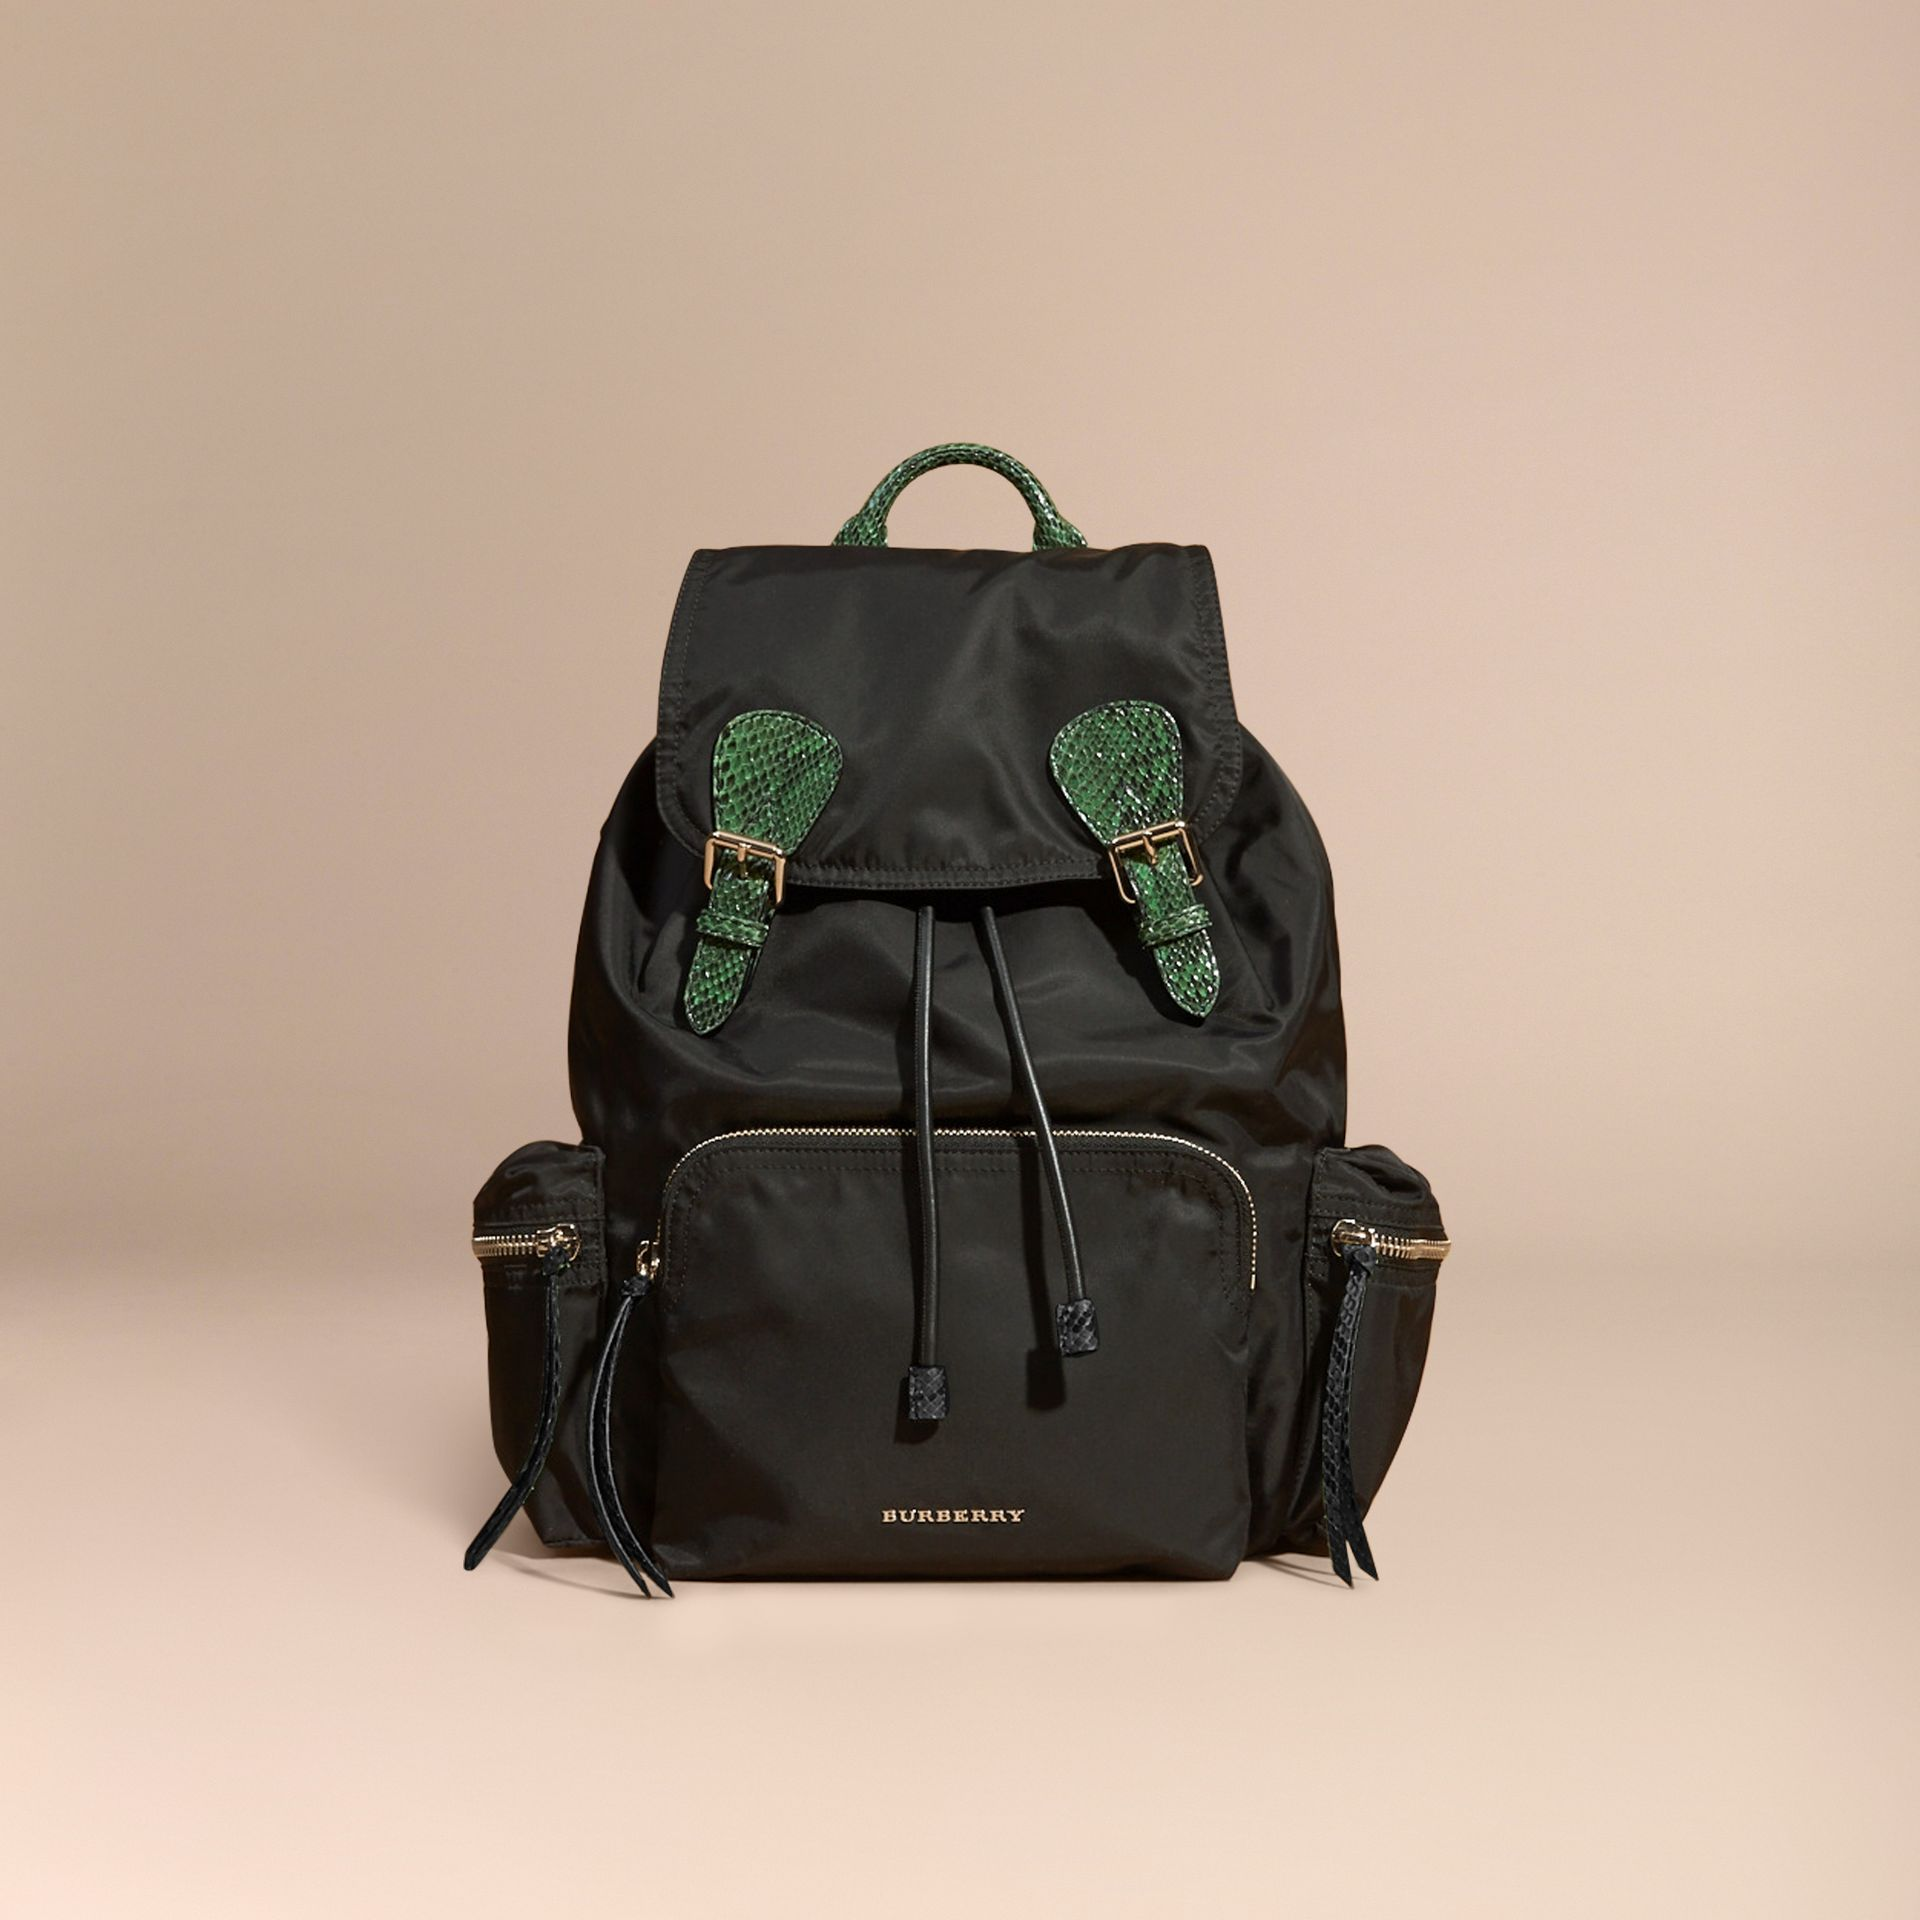 Black/bright green The Large Rucksack in Technical Nylon and Snakeskin Black/bright Green - gallery image 8